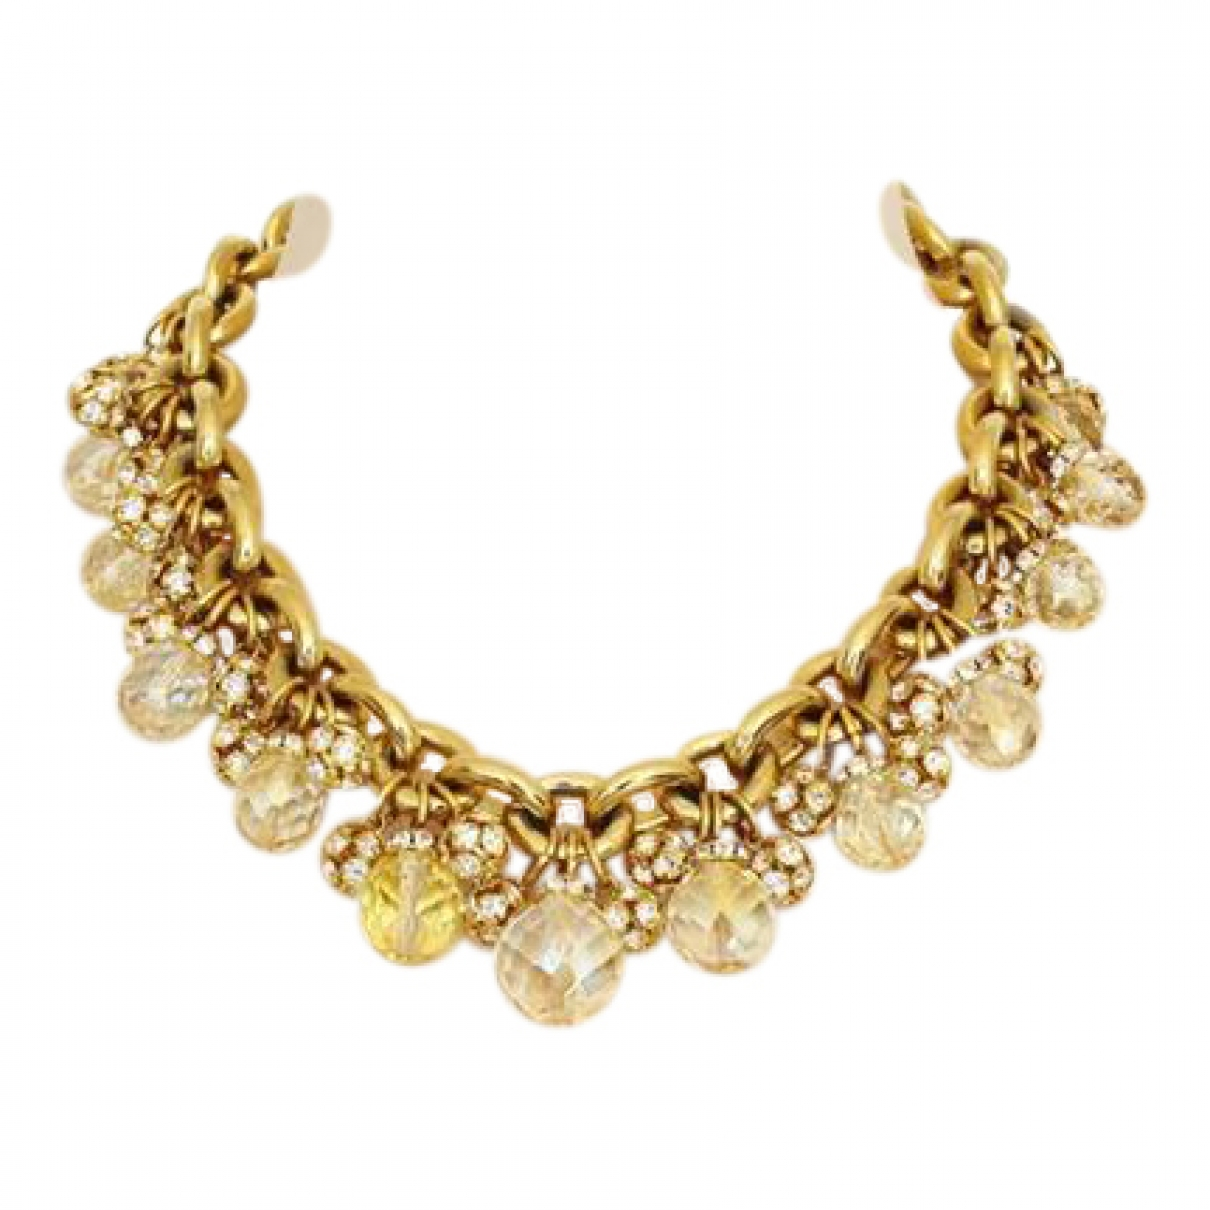 Carlo Zini \N Yellow gold necklace for Women \N